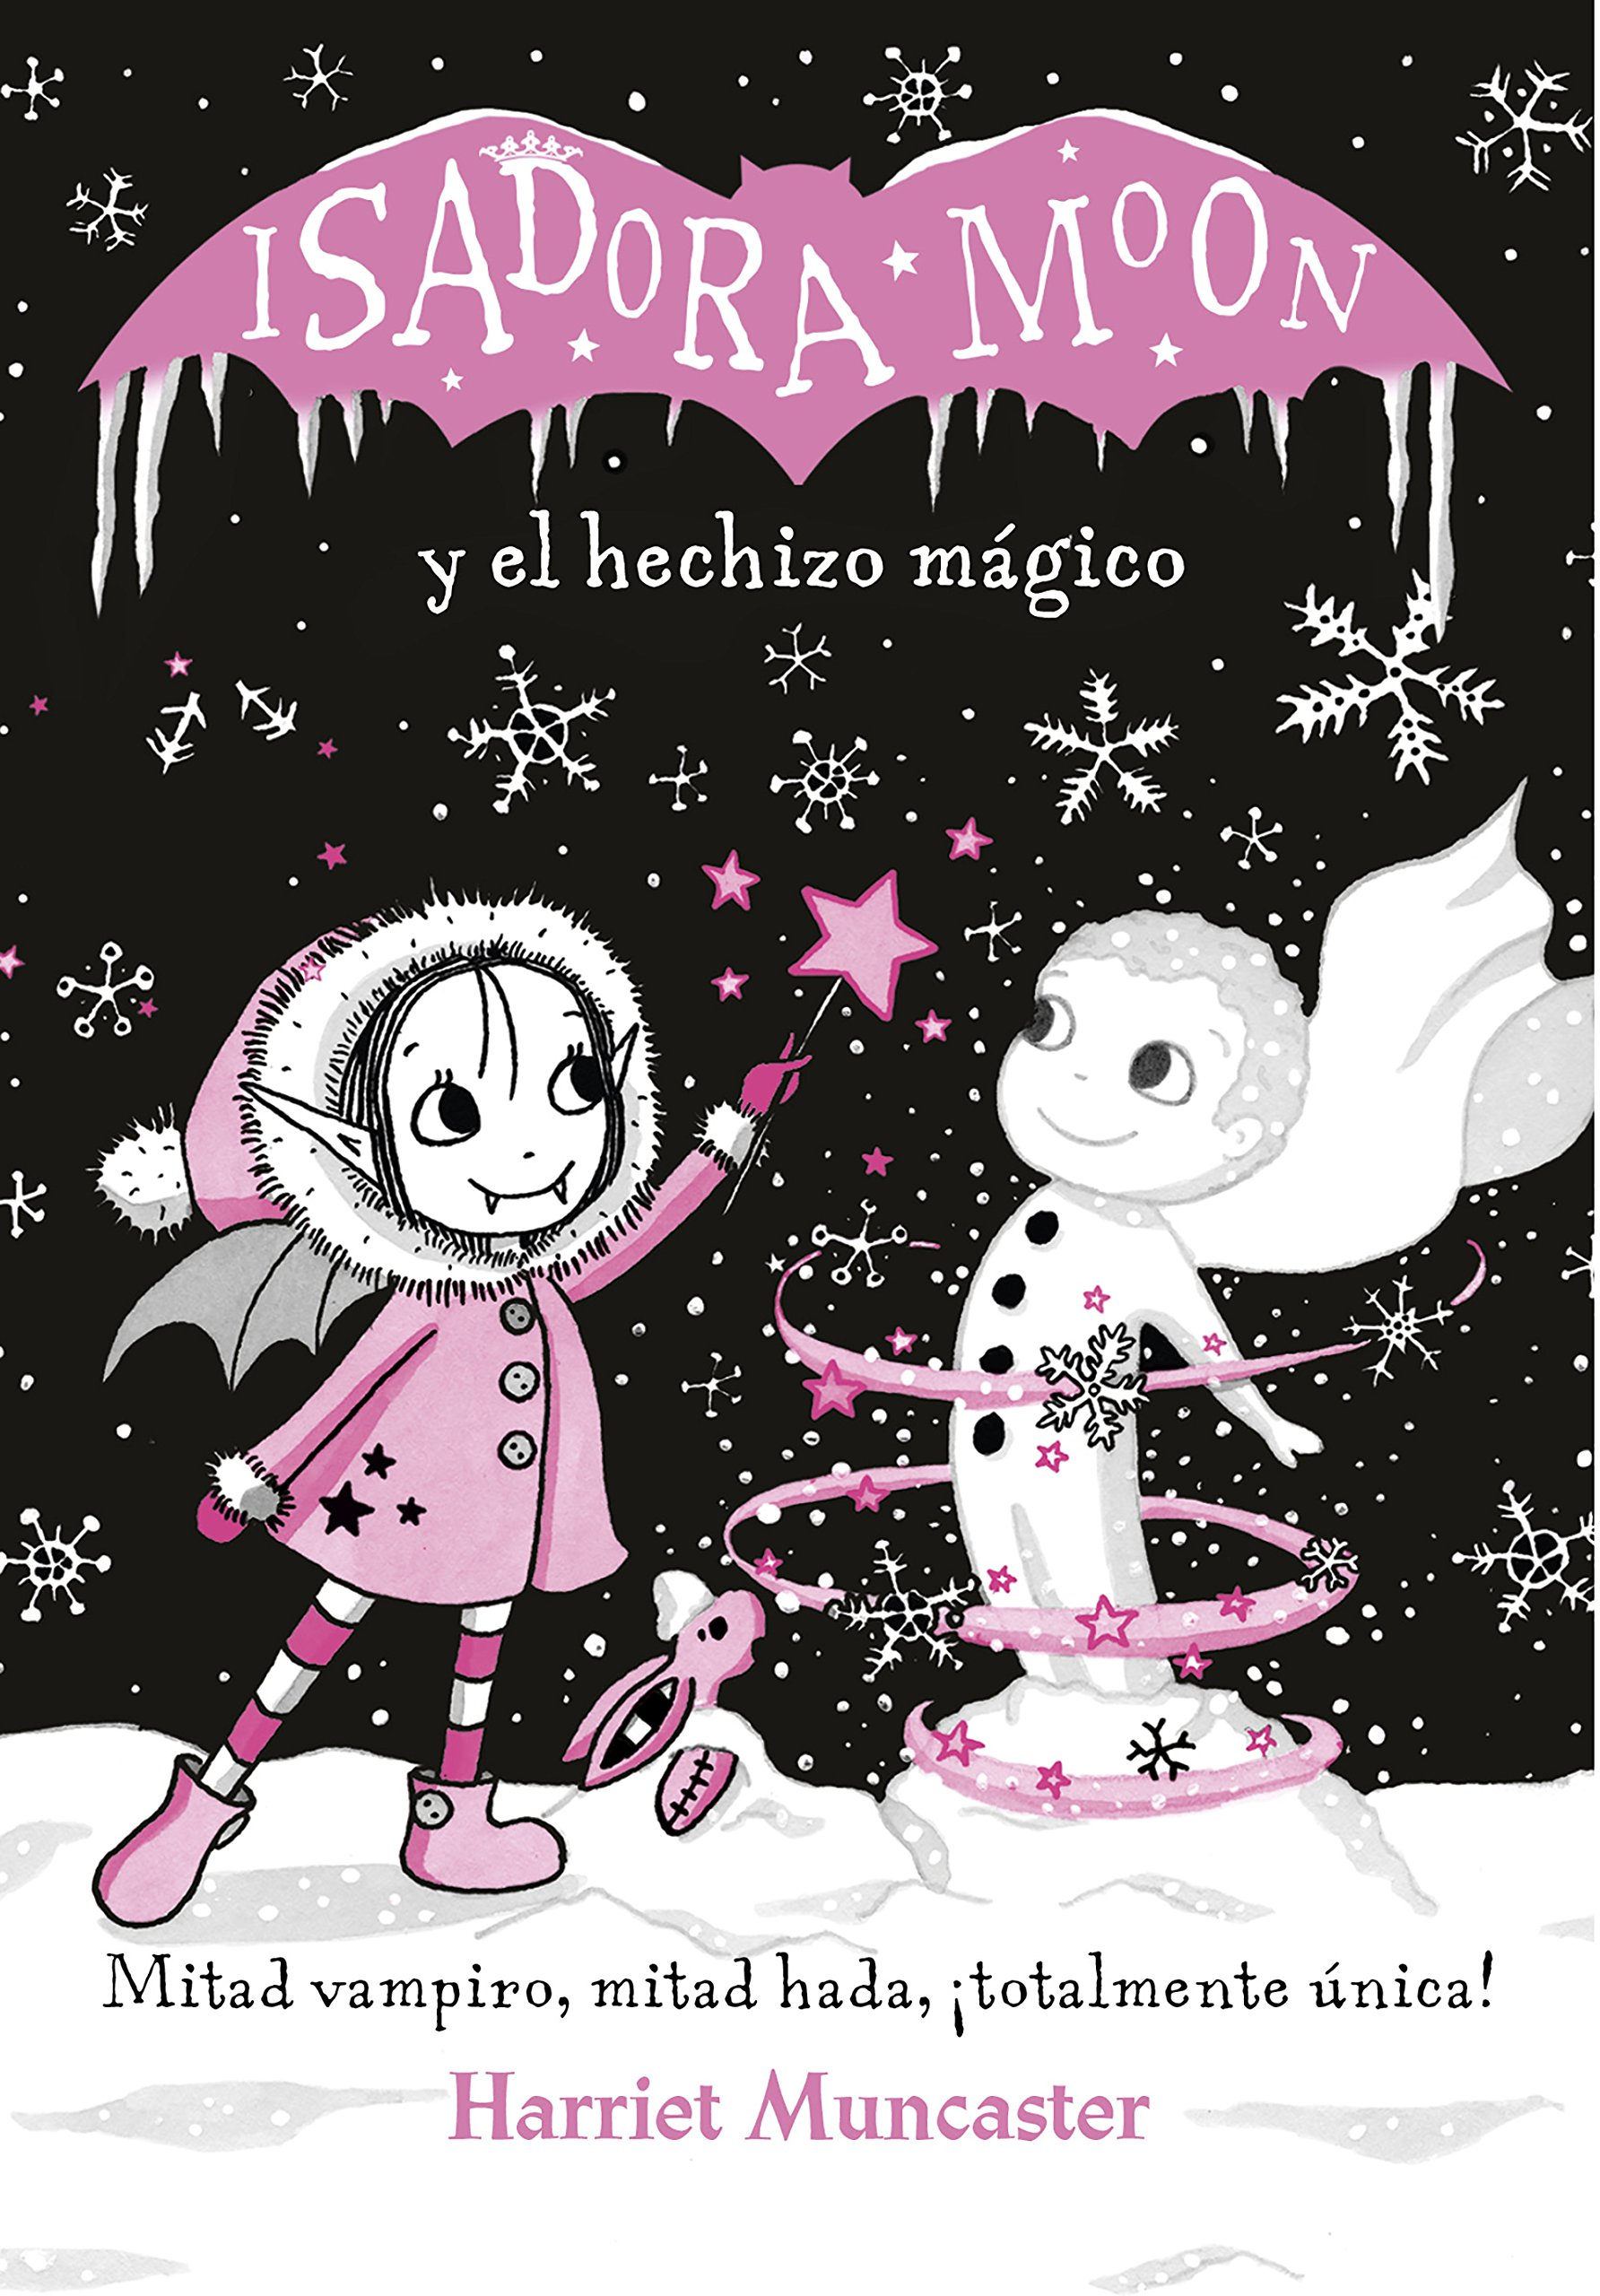 Amazon.com: Isadora Moon y el hechizo mágico / Isadora Moon Makes Winter Magic (Spanish Edition) (9788420487601): Harriet Muncaster: Books